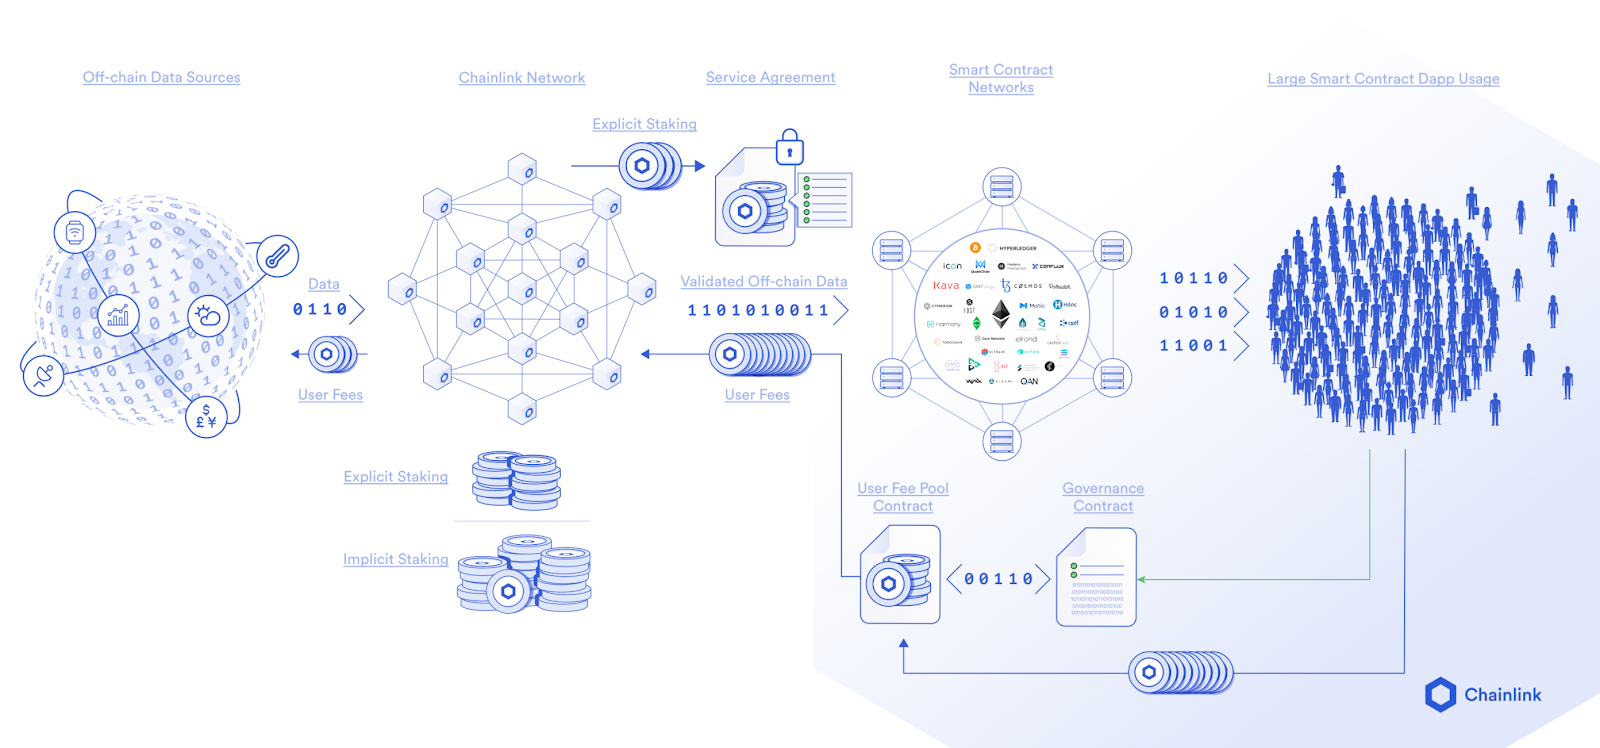 LINK token usage in the Chainlink Network